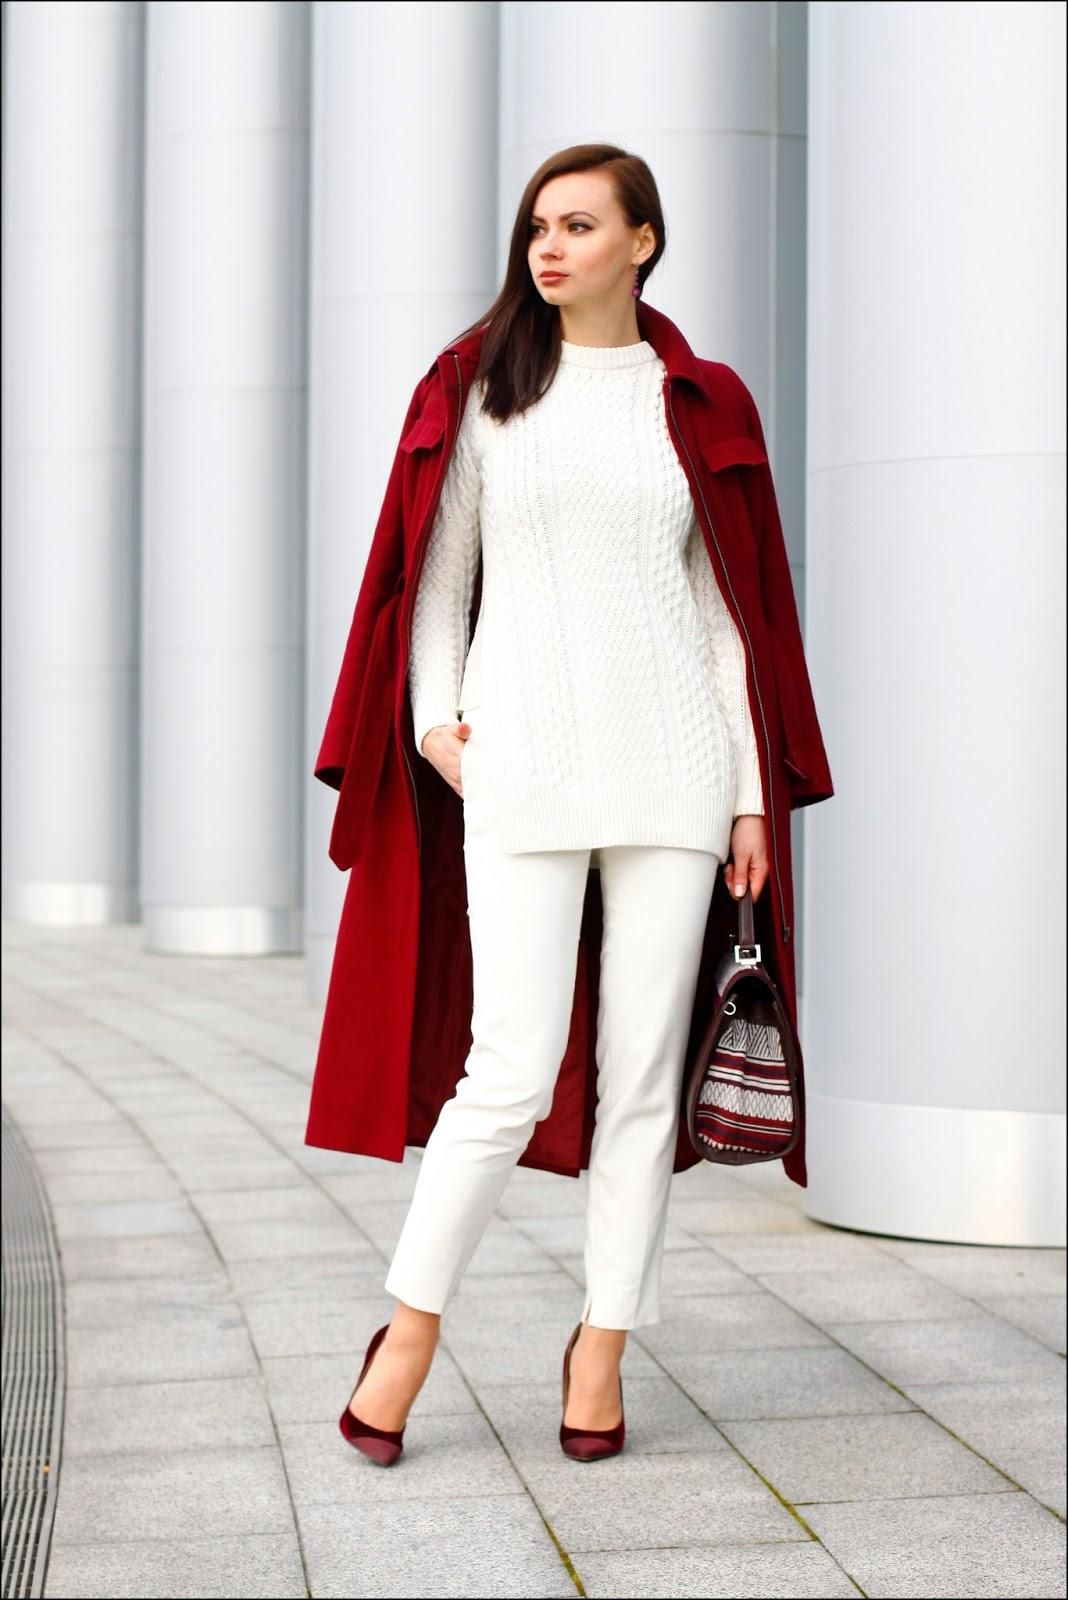 Fall / Winter Outfit Idea: Gorgeous all white ensemble styled with a luxe red velvet coat and matching classic pumps—so festive.